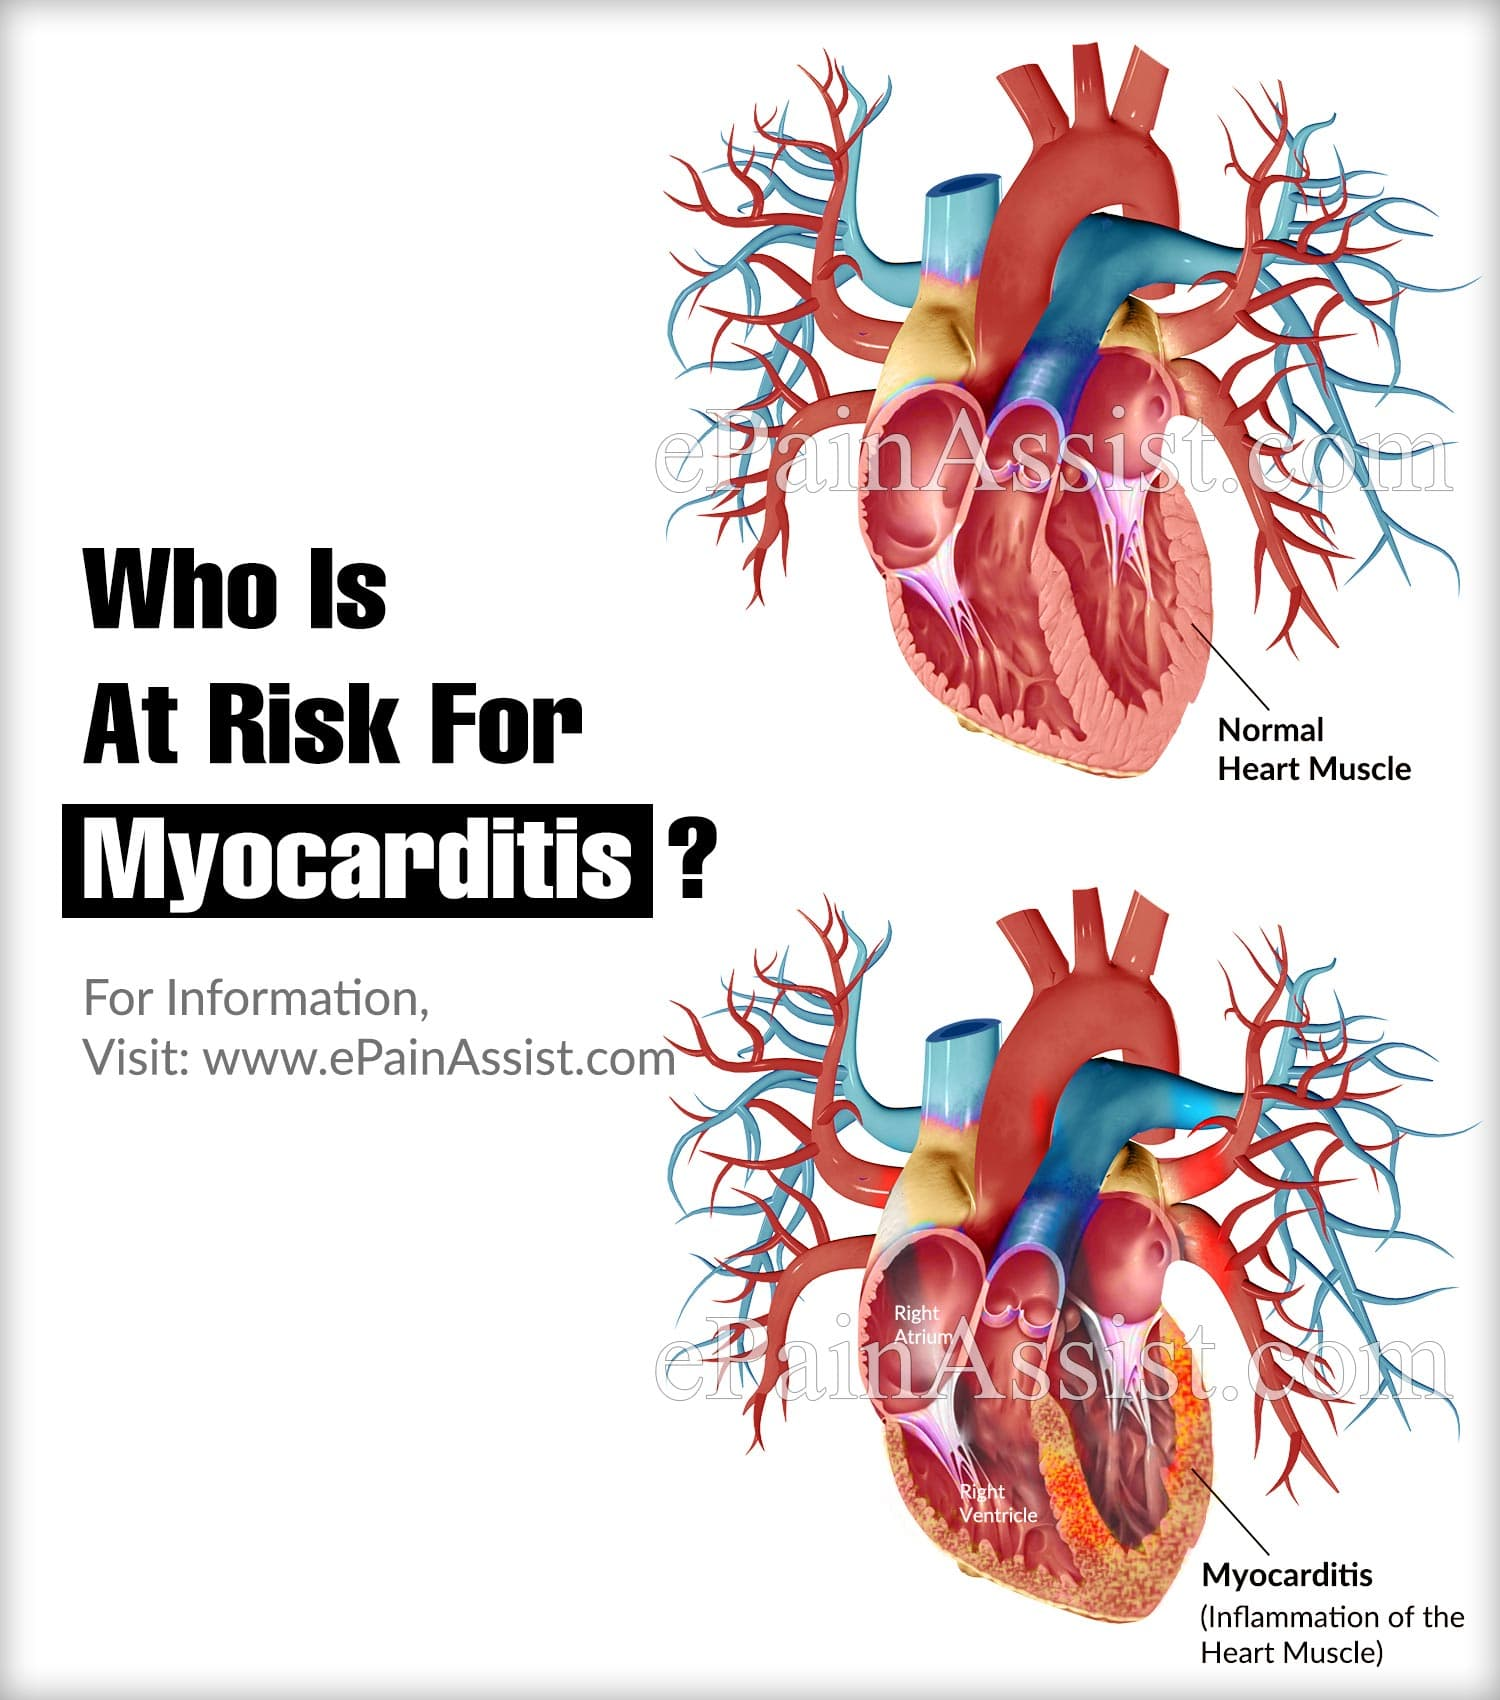 Who Is At Risk For Myocarditis?